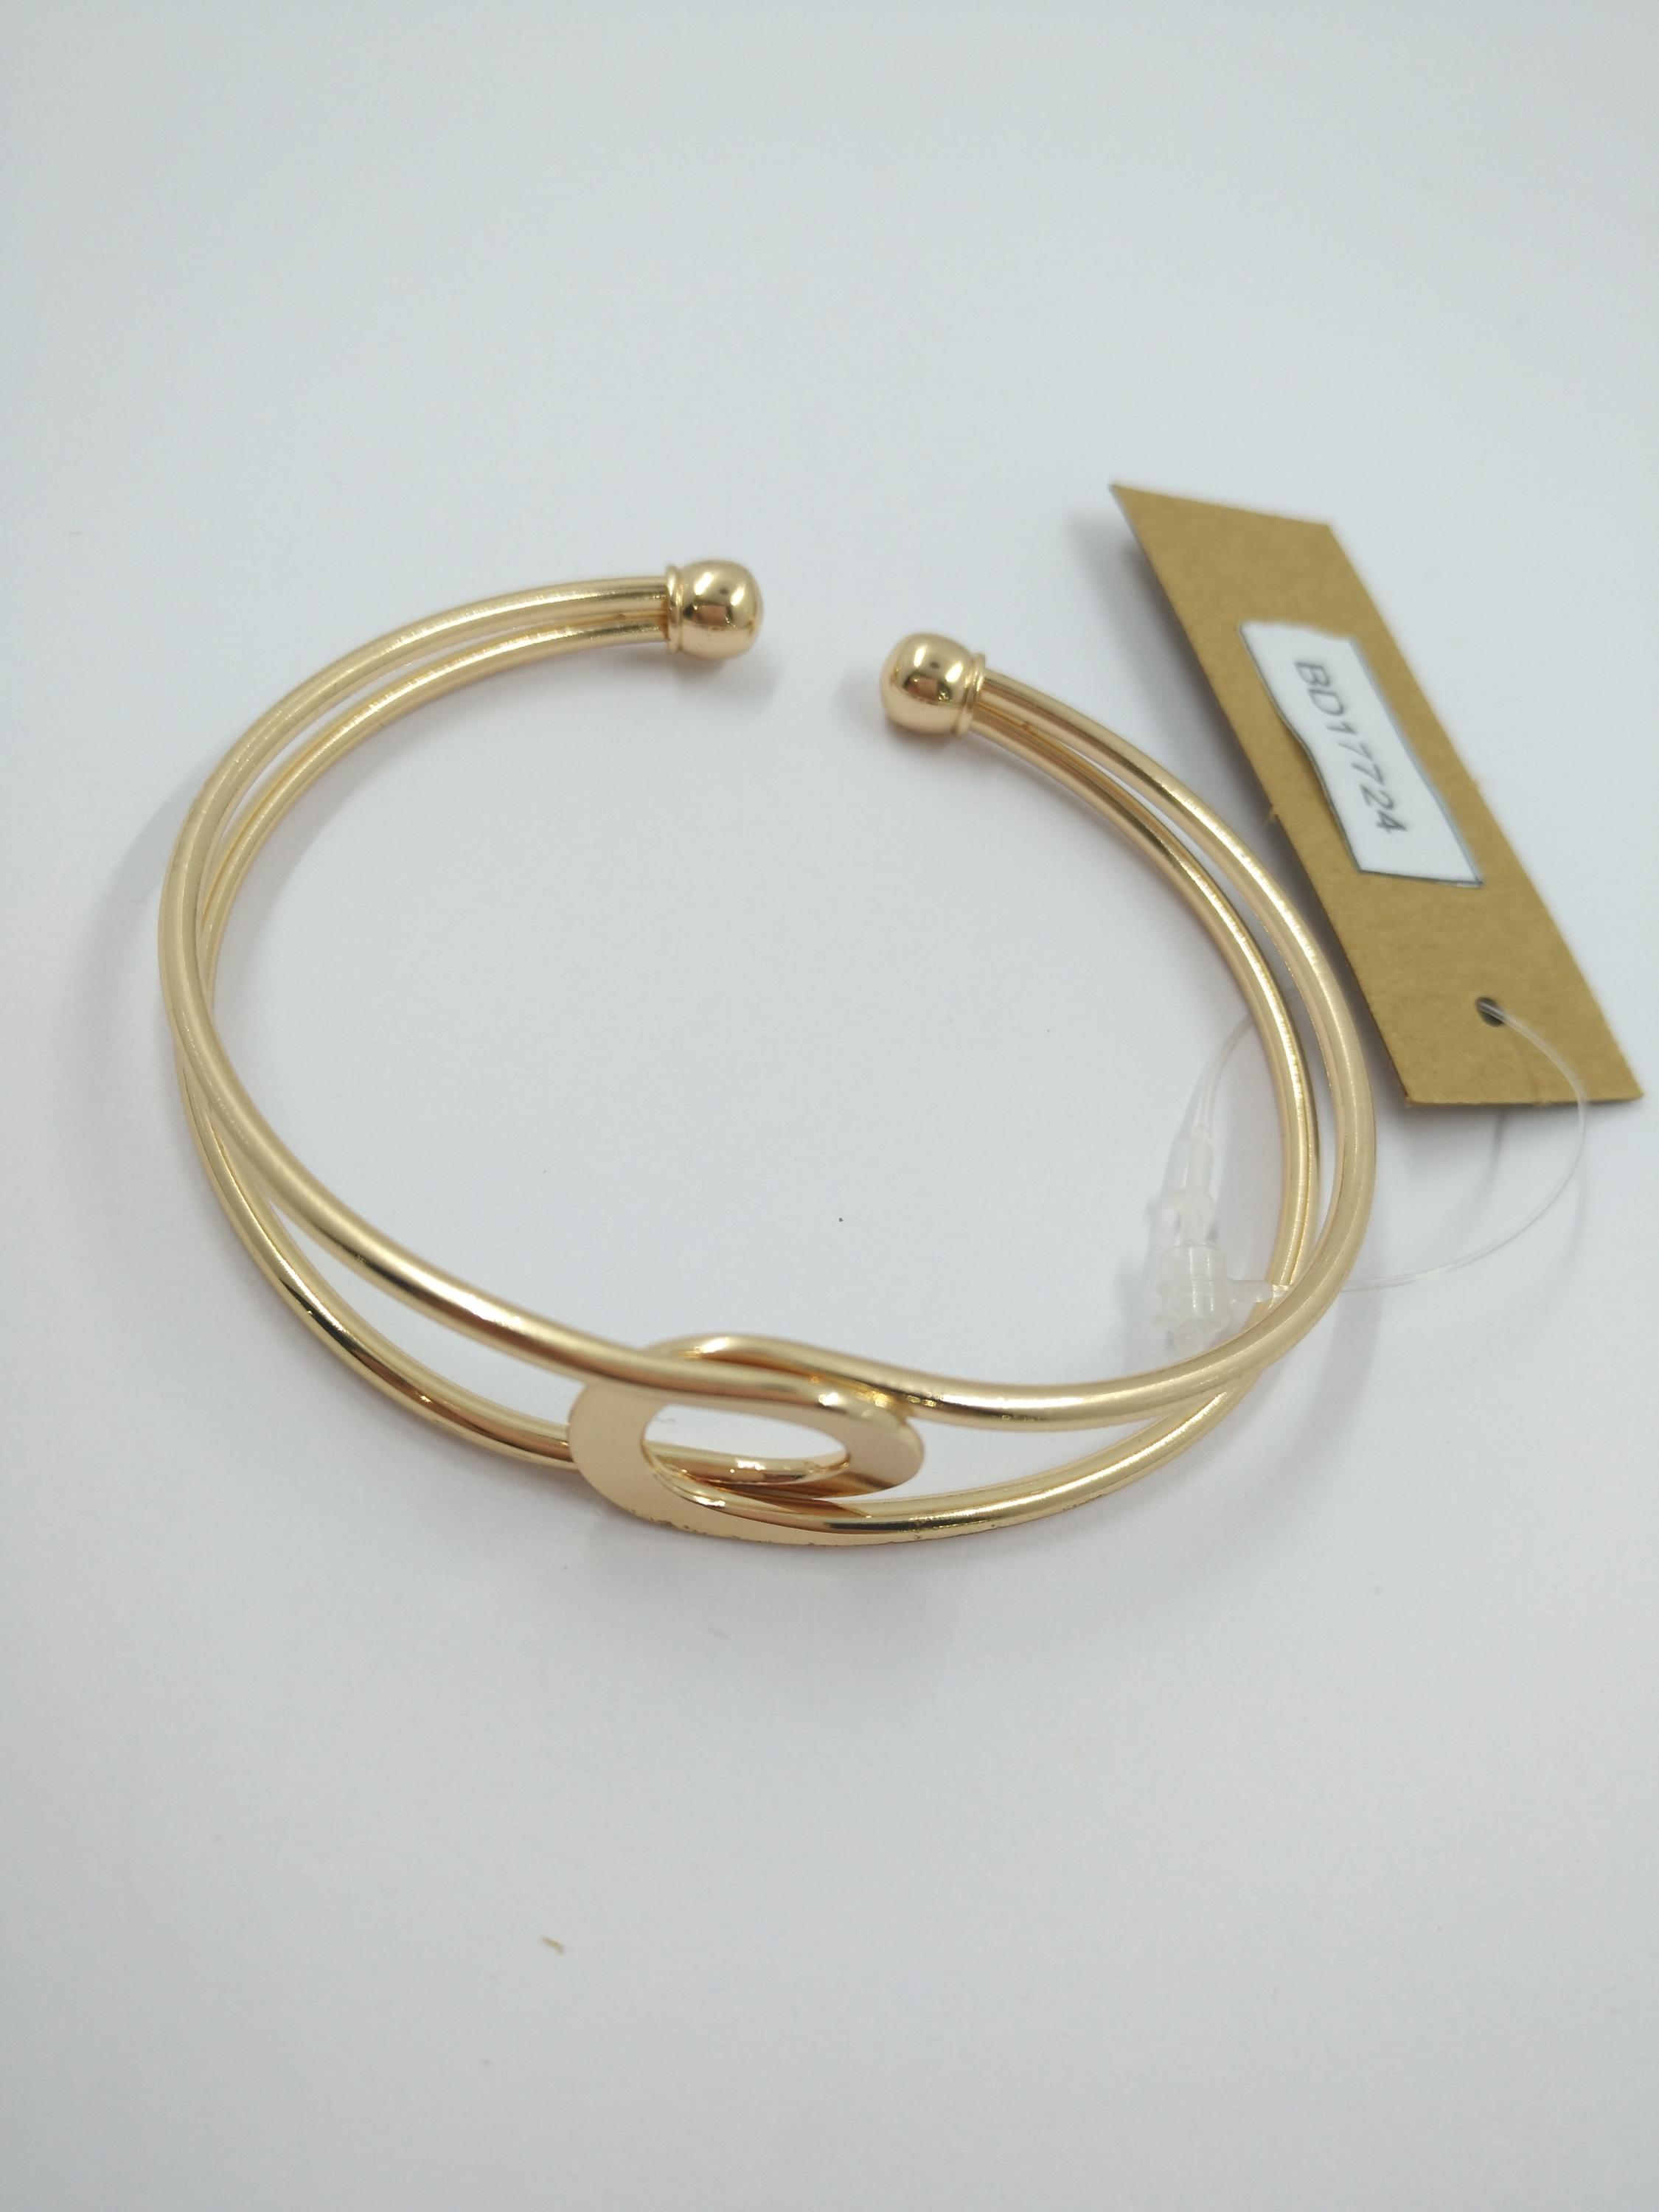 style jewelry unusual and products brushed finish bangle modern yellow unique with russian bespoke gold bangles handmade